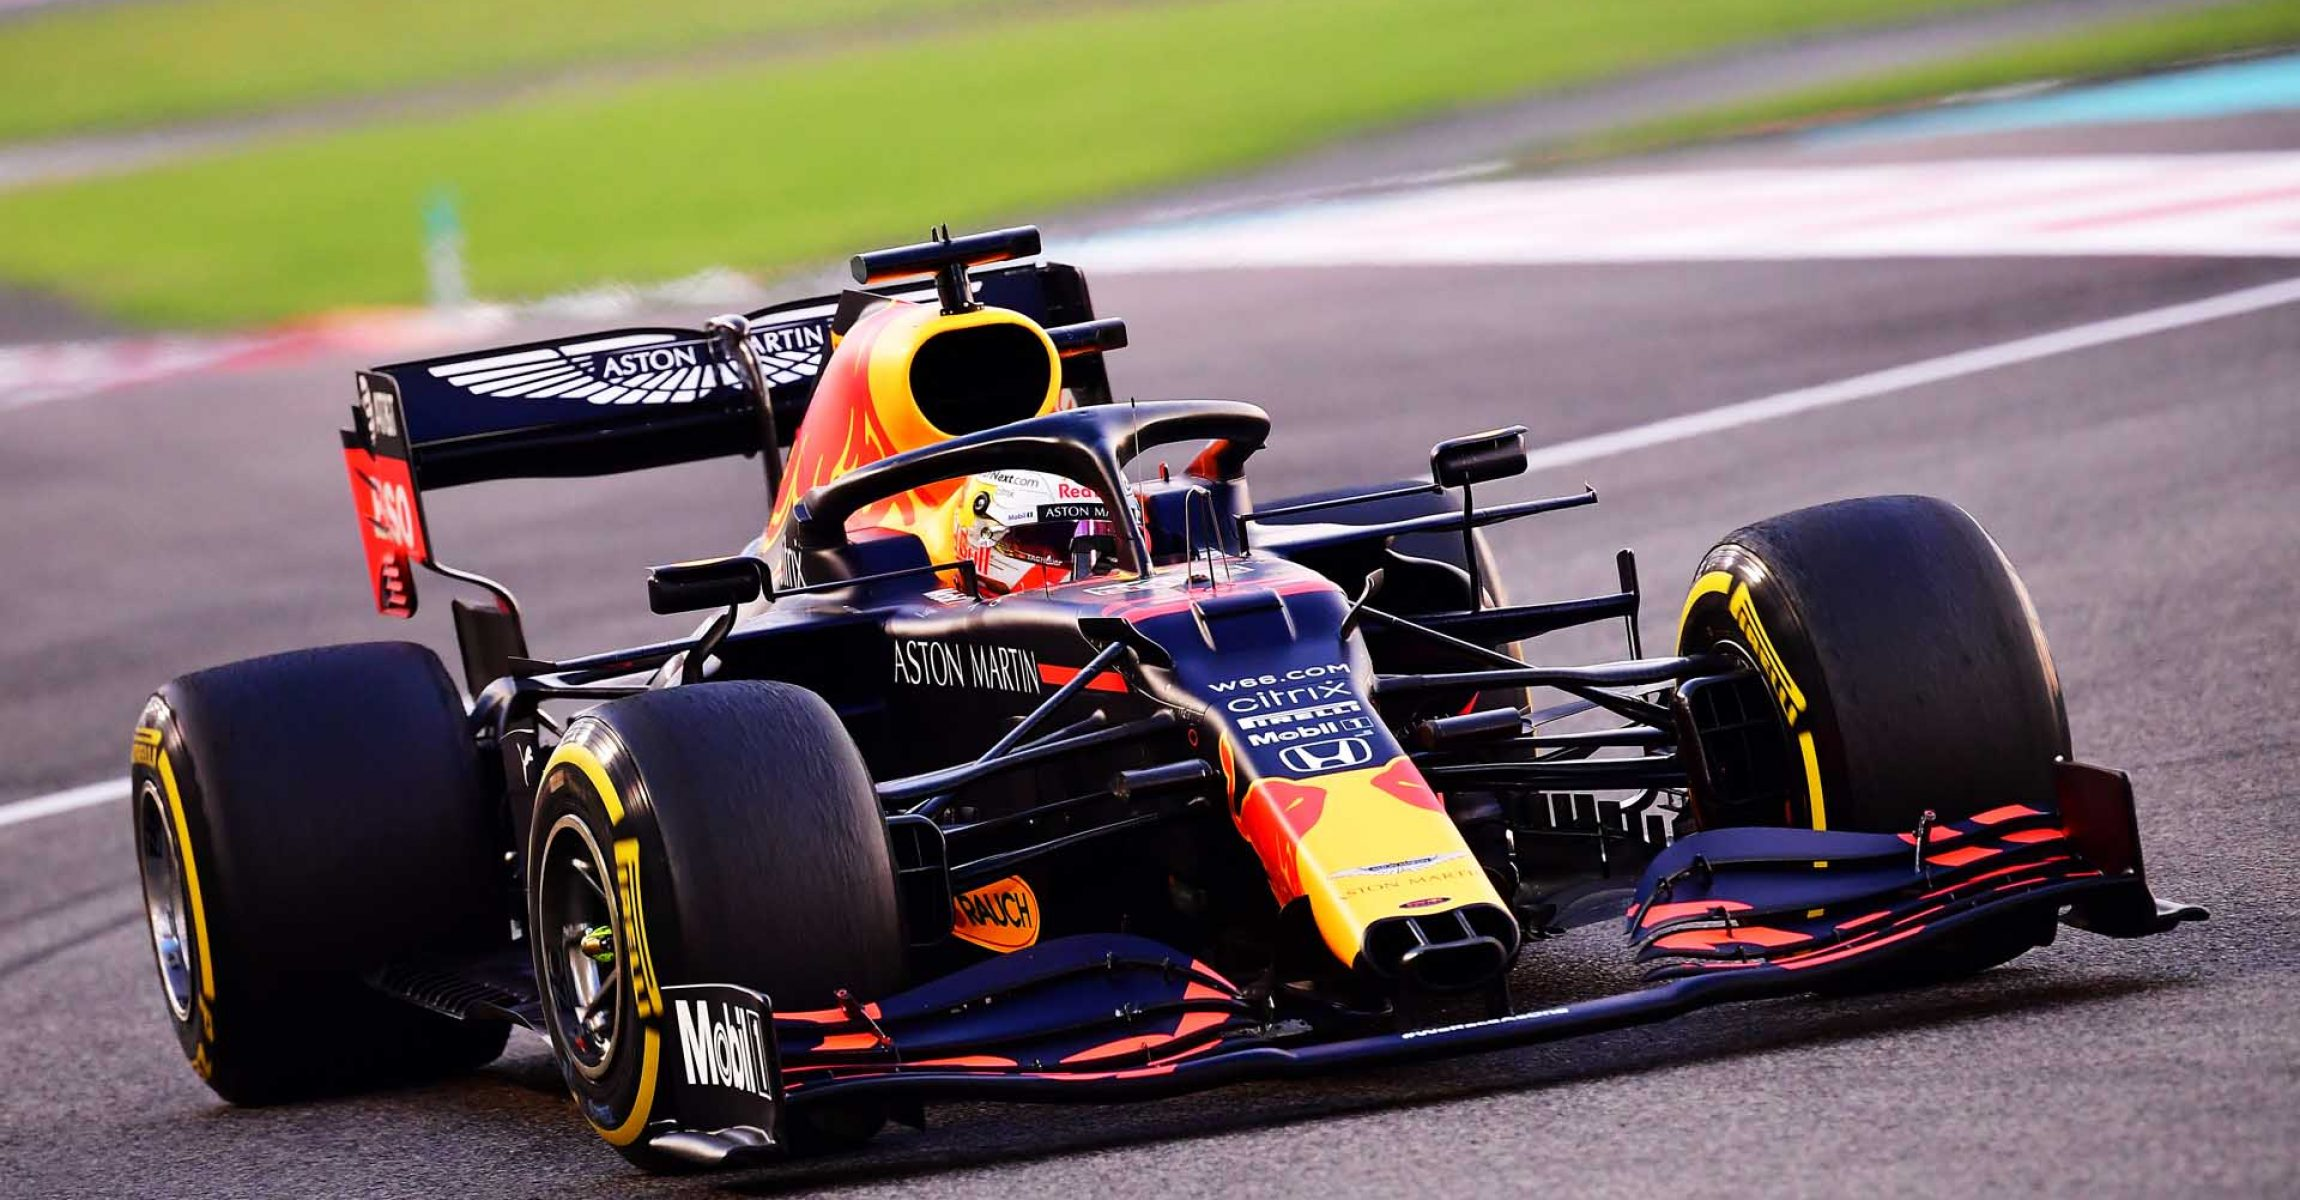 ABU DHABI, UNITED ARAB EMIRATES - DECEMBER 13: Max Verstappen of the Netherlands driving the (33) Aston Martin Red Bull Racing RB16 during the F1 Grand Prix of Abu Dhabi at Yas Marina Circuit on December 13, 2020 in Abu Dhabi, United Arab Emirates. (Photo by Giuseppe Cacace - Pool/Getty Images)